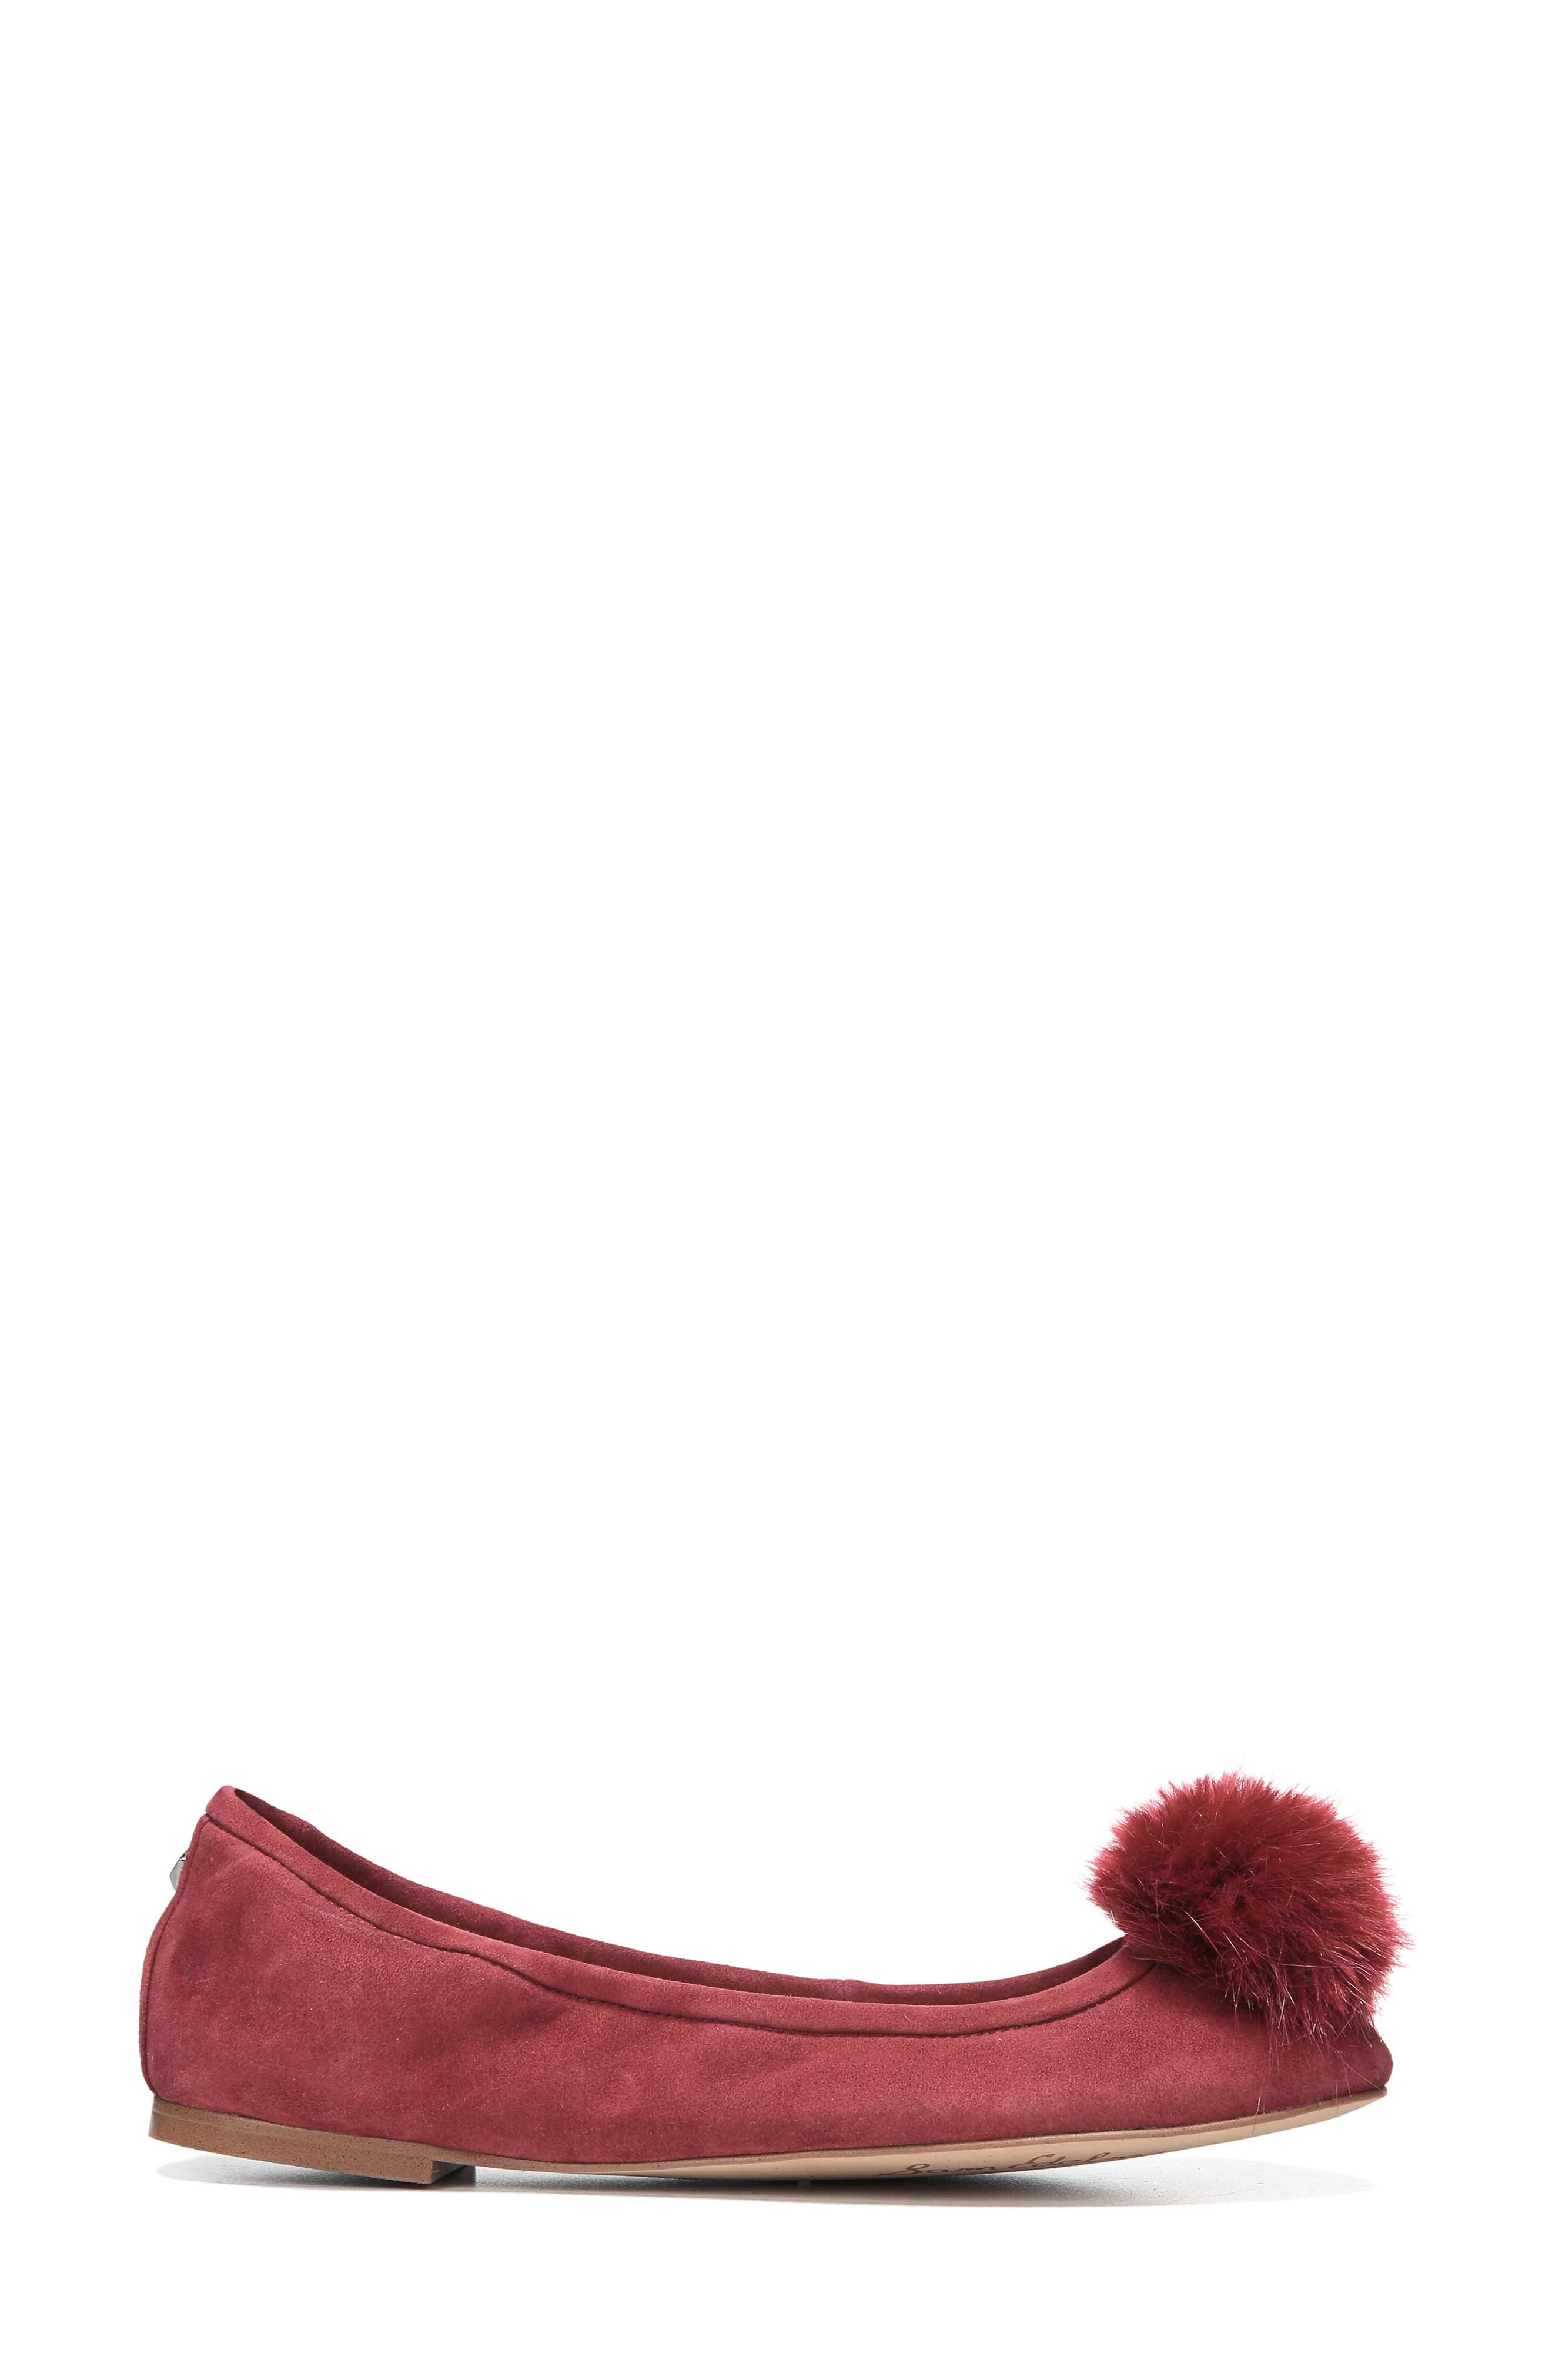 Farina Flat with Faux Fur Pompom,                             Alternate thumbnail 3, color,                             Tango Red Leather